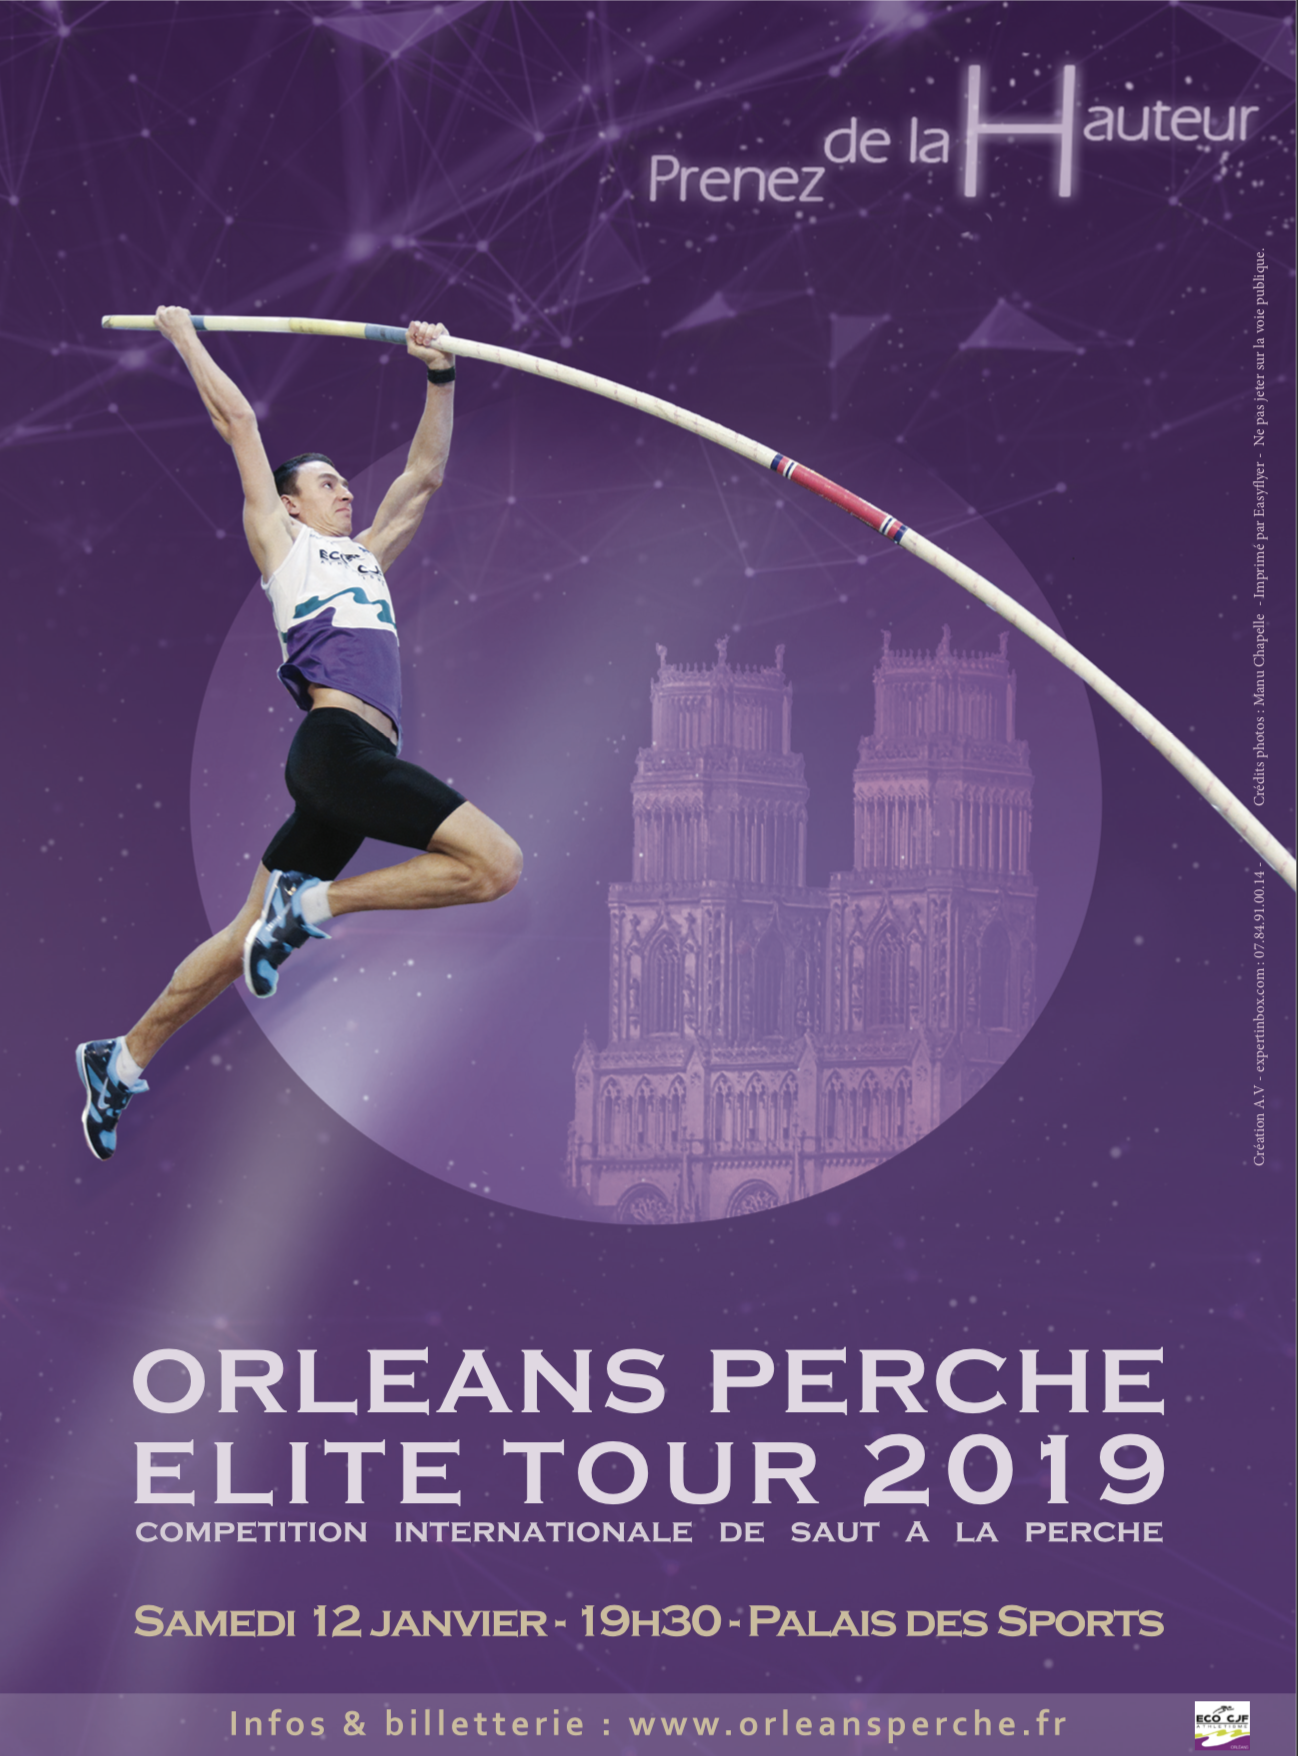 perche elite tour 2019